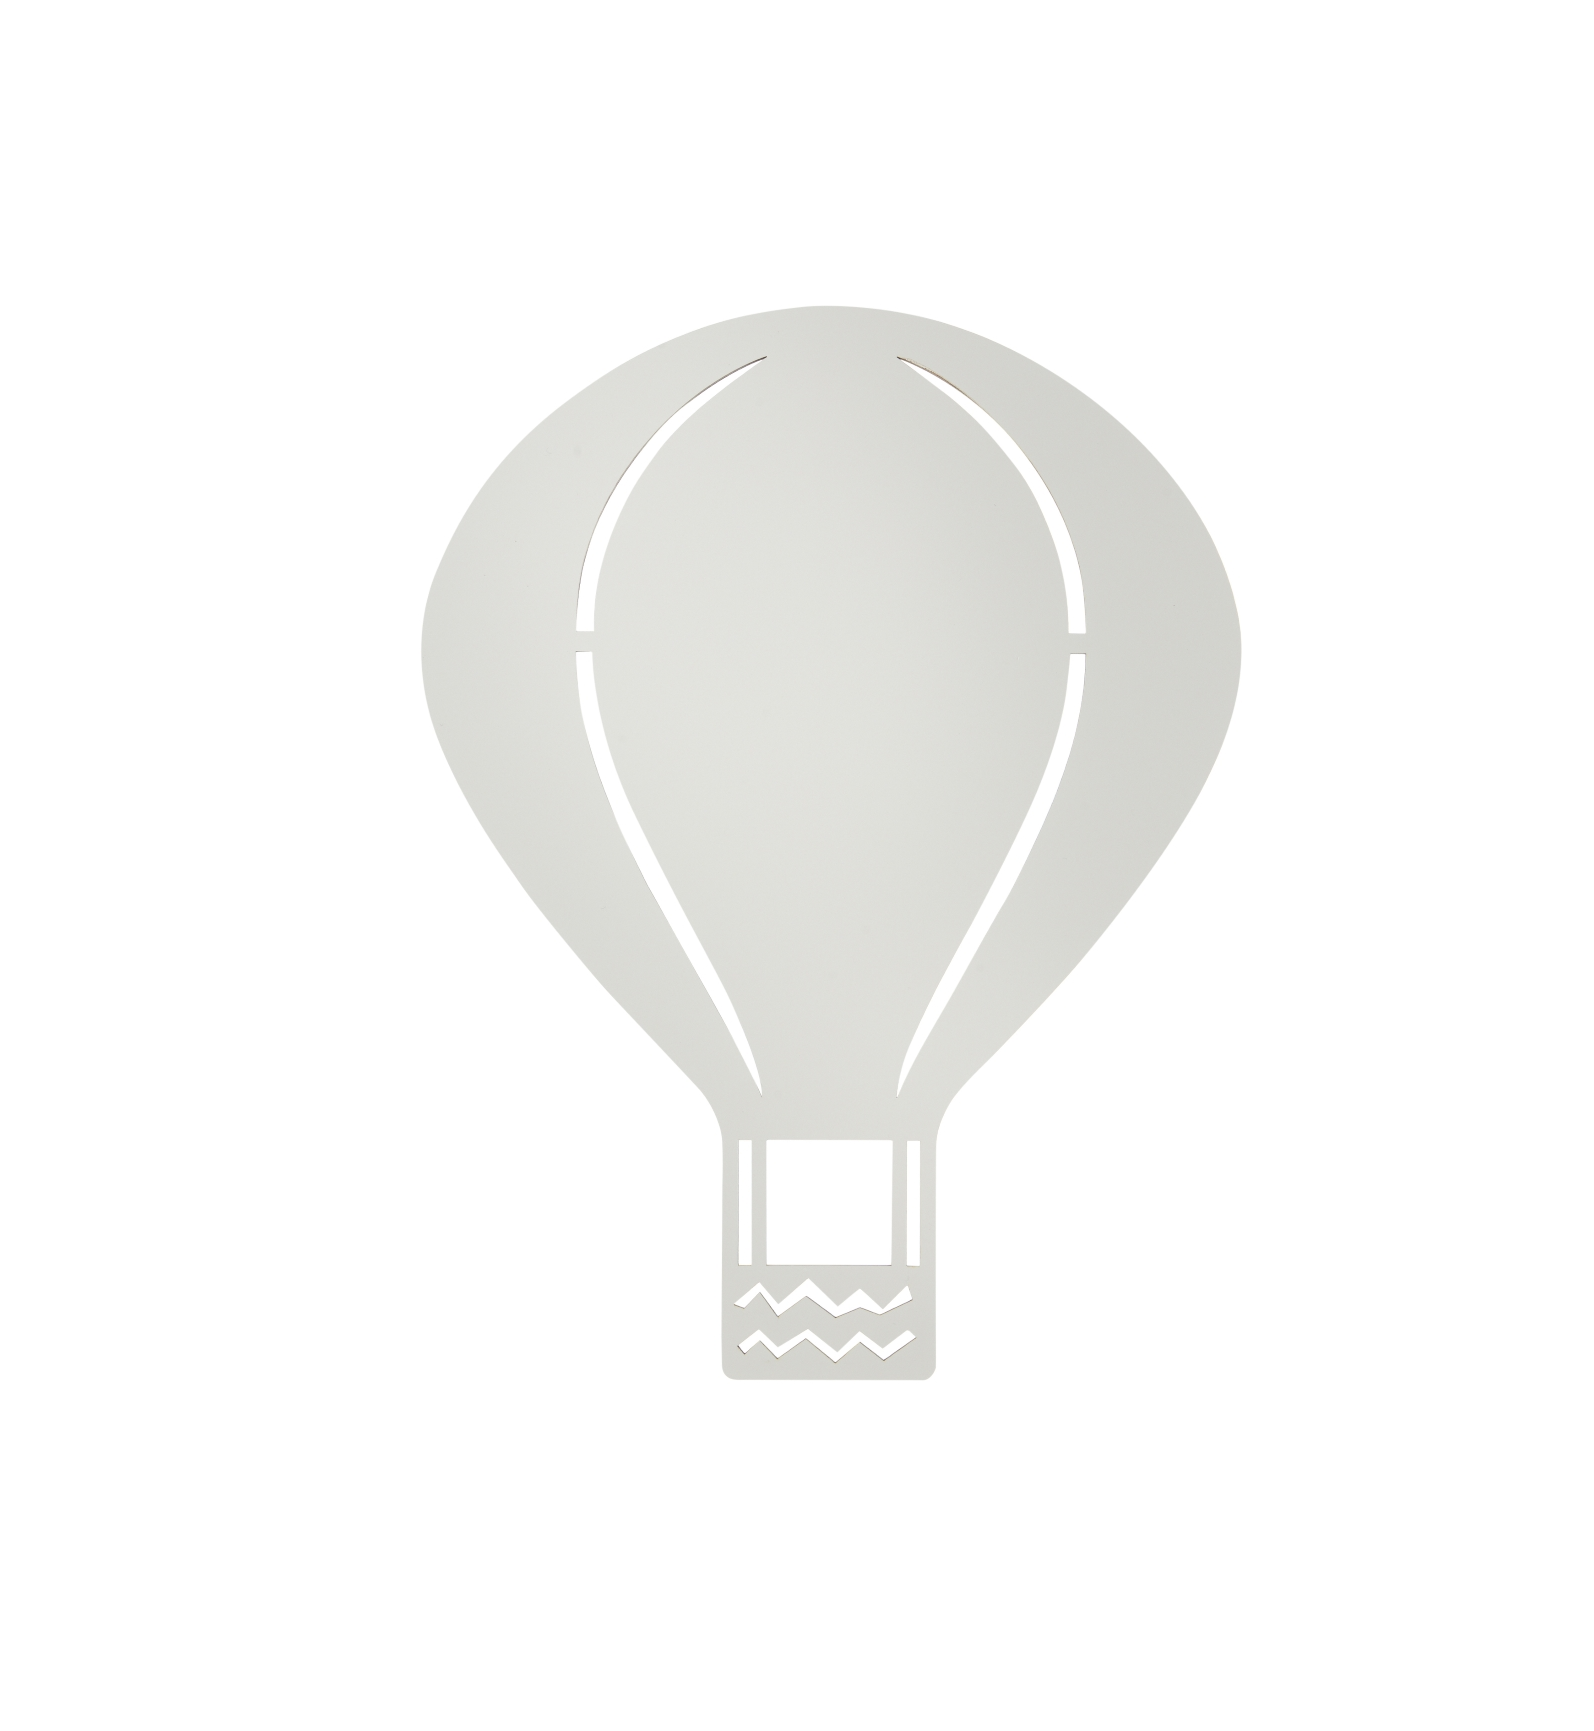 Barnlampa Air Balloon grey, Ferm living